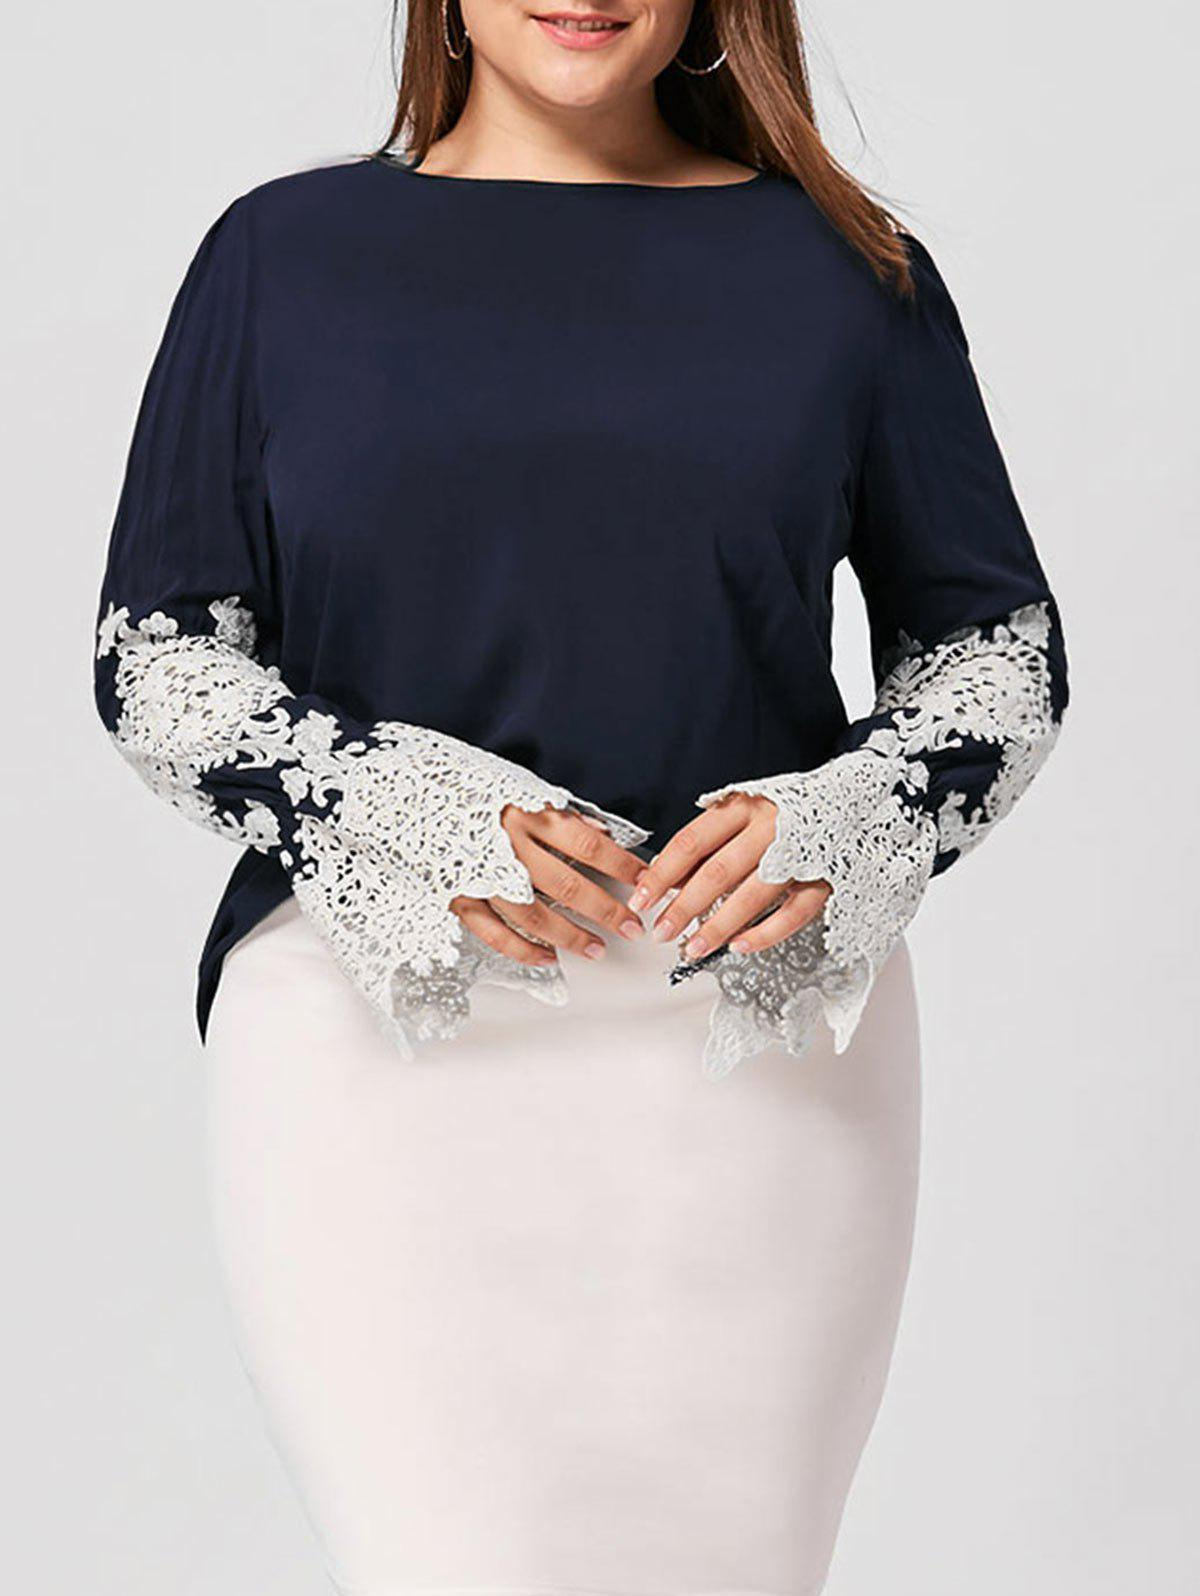 Plus Size Lace Panel High Low BlouseWOMEN<br><br>Size: XL; Color: BLACK BLUE; Material: Rayon; Shirt Length: Long; Sleeve Length: Full; Collar: Slash Neck; Style: Fashion; Season: Fall,Spring; Embellishment: Lace; Pattern Type: Others; Weight: 0.2400kg; Package Contents: 1 x Top;